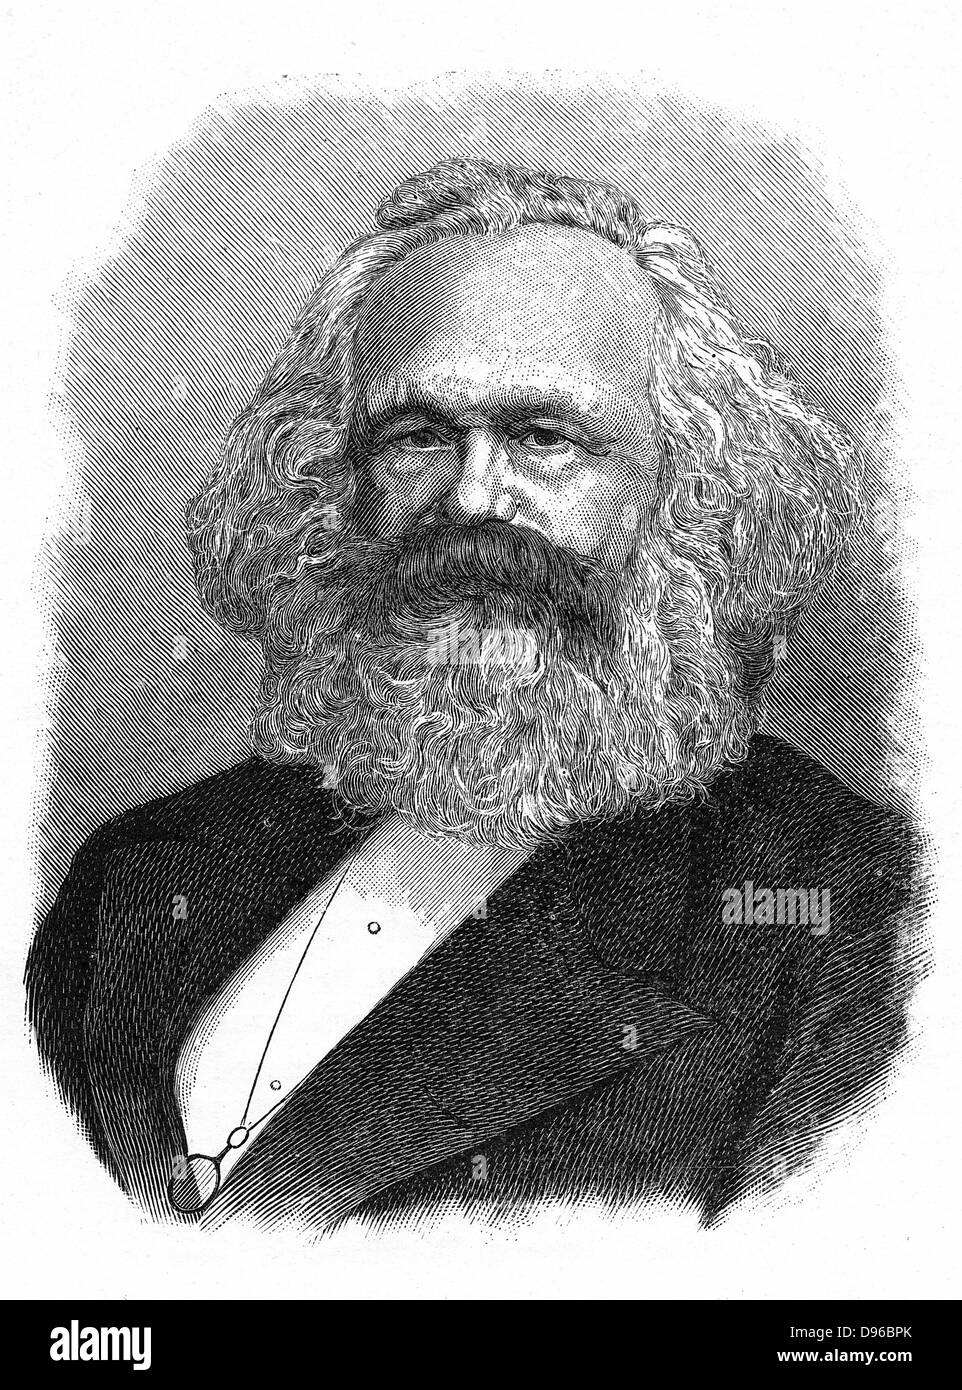 Karl Marx (1818-1883) Father of modern Communism. German political, social and economic theorist. Engraving - Stock Image